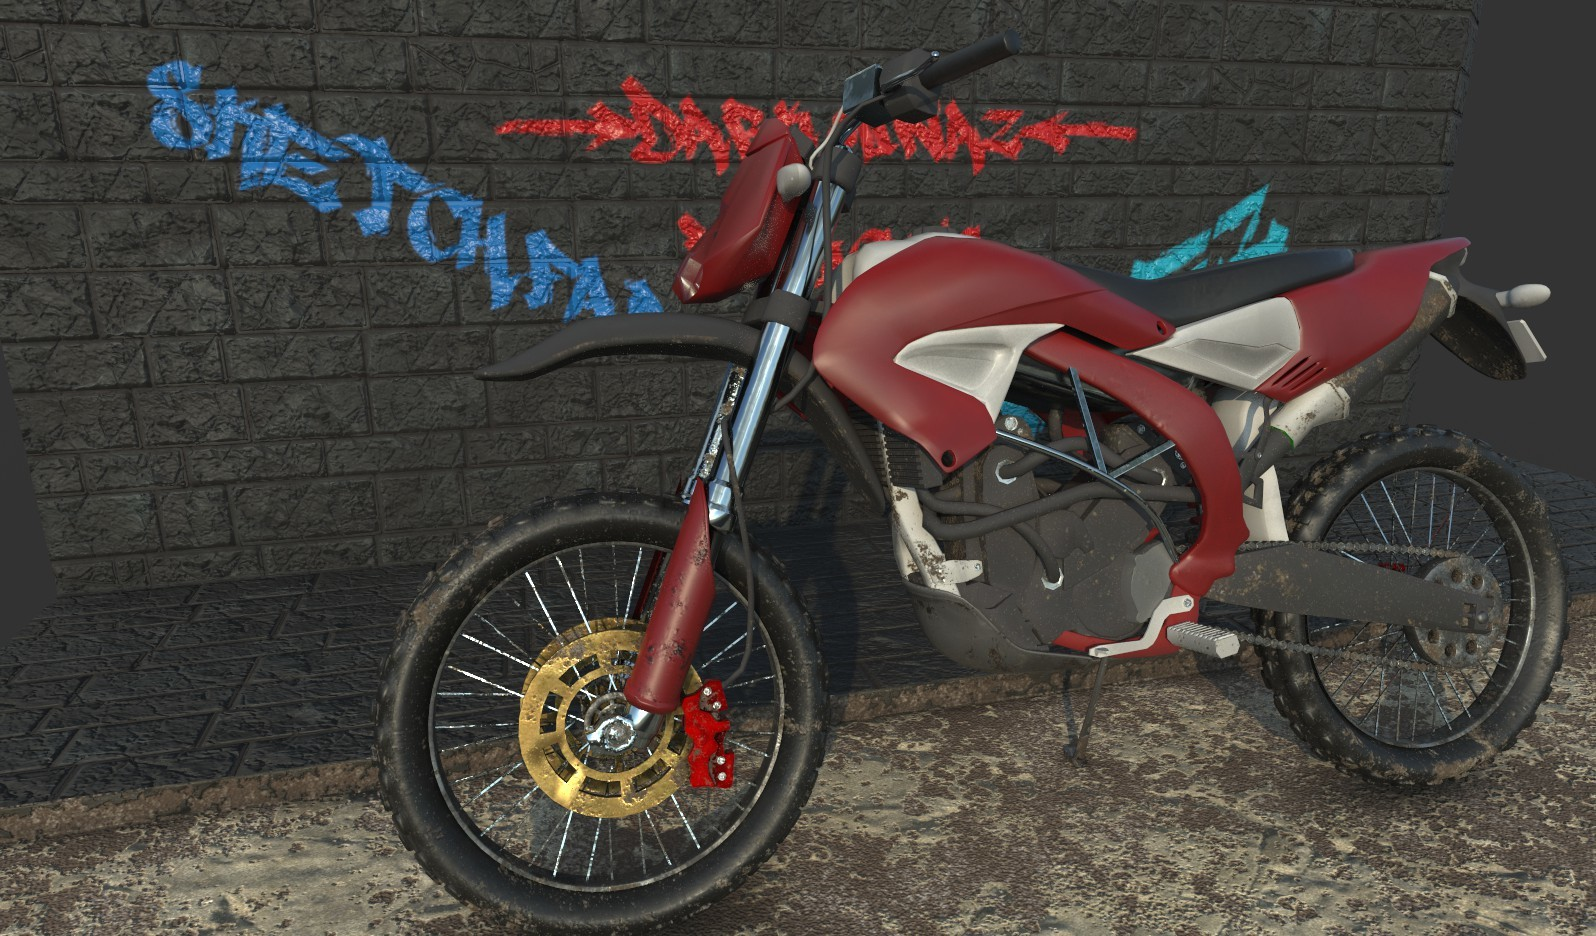 Vray on updated Motorbike